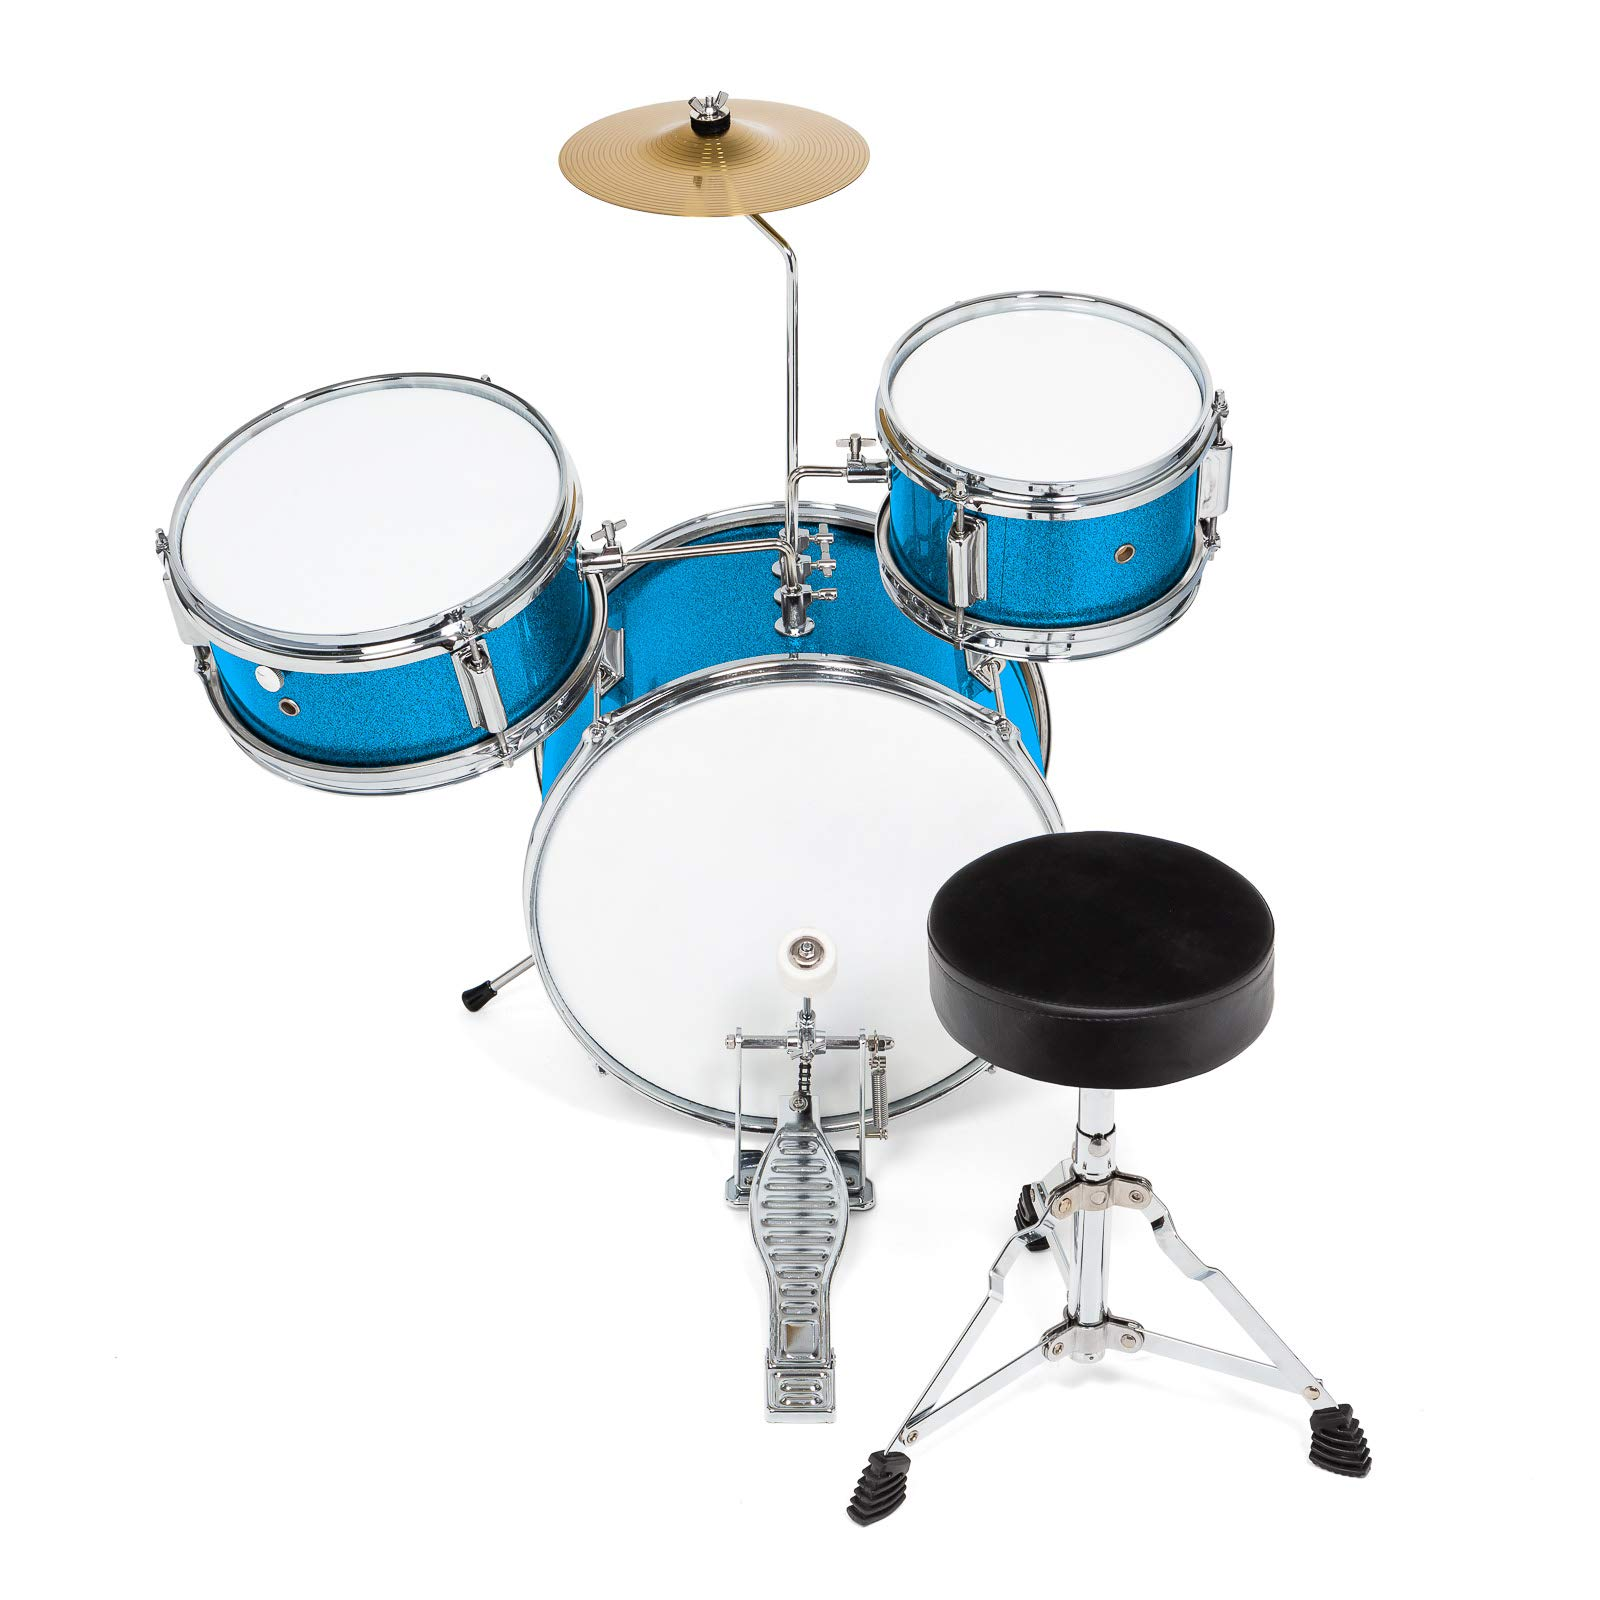 Ashthorpe 3-Piece Complete Kid's Junior Drum Set - Children's Beginner Kit with 14'' Bass, Adjustable Throne, Cymbal, Pedal & Drumsticks - Blue by Ashthorpe (Image #3)